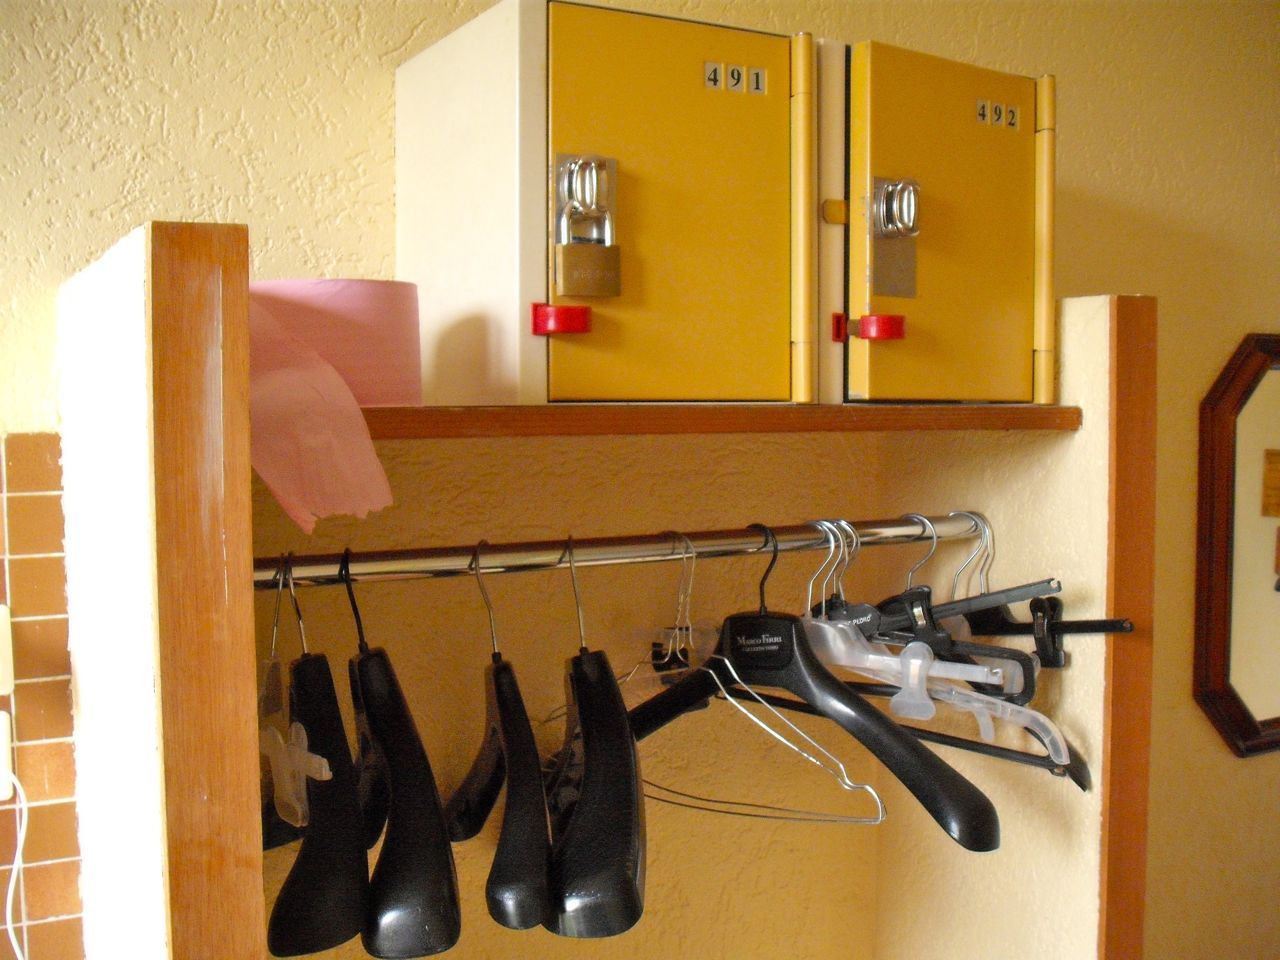 Hanging space & safes